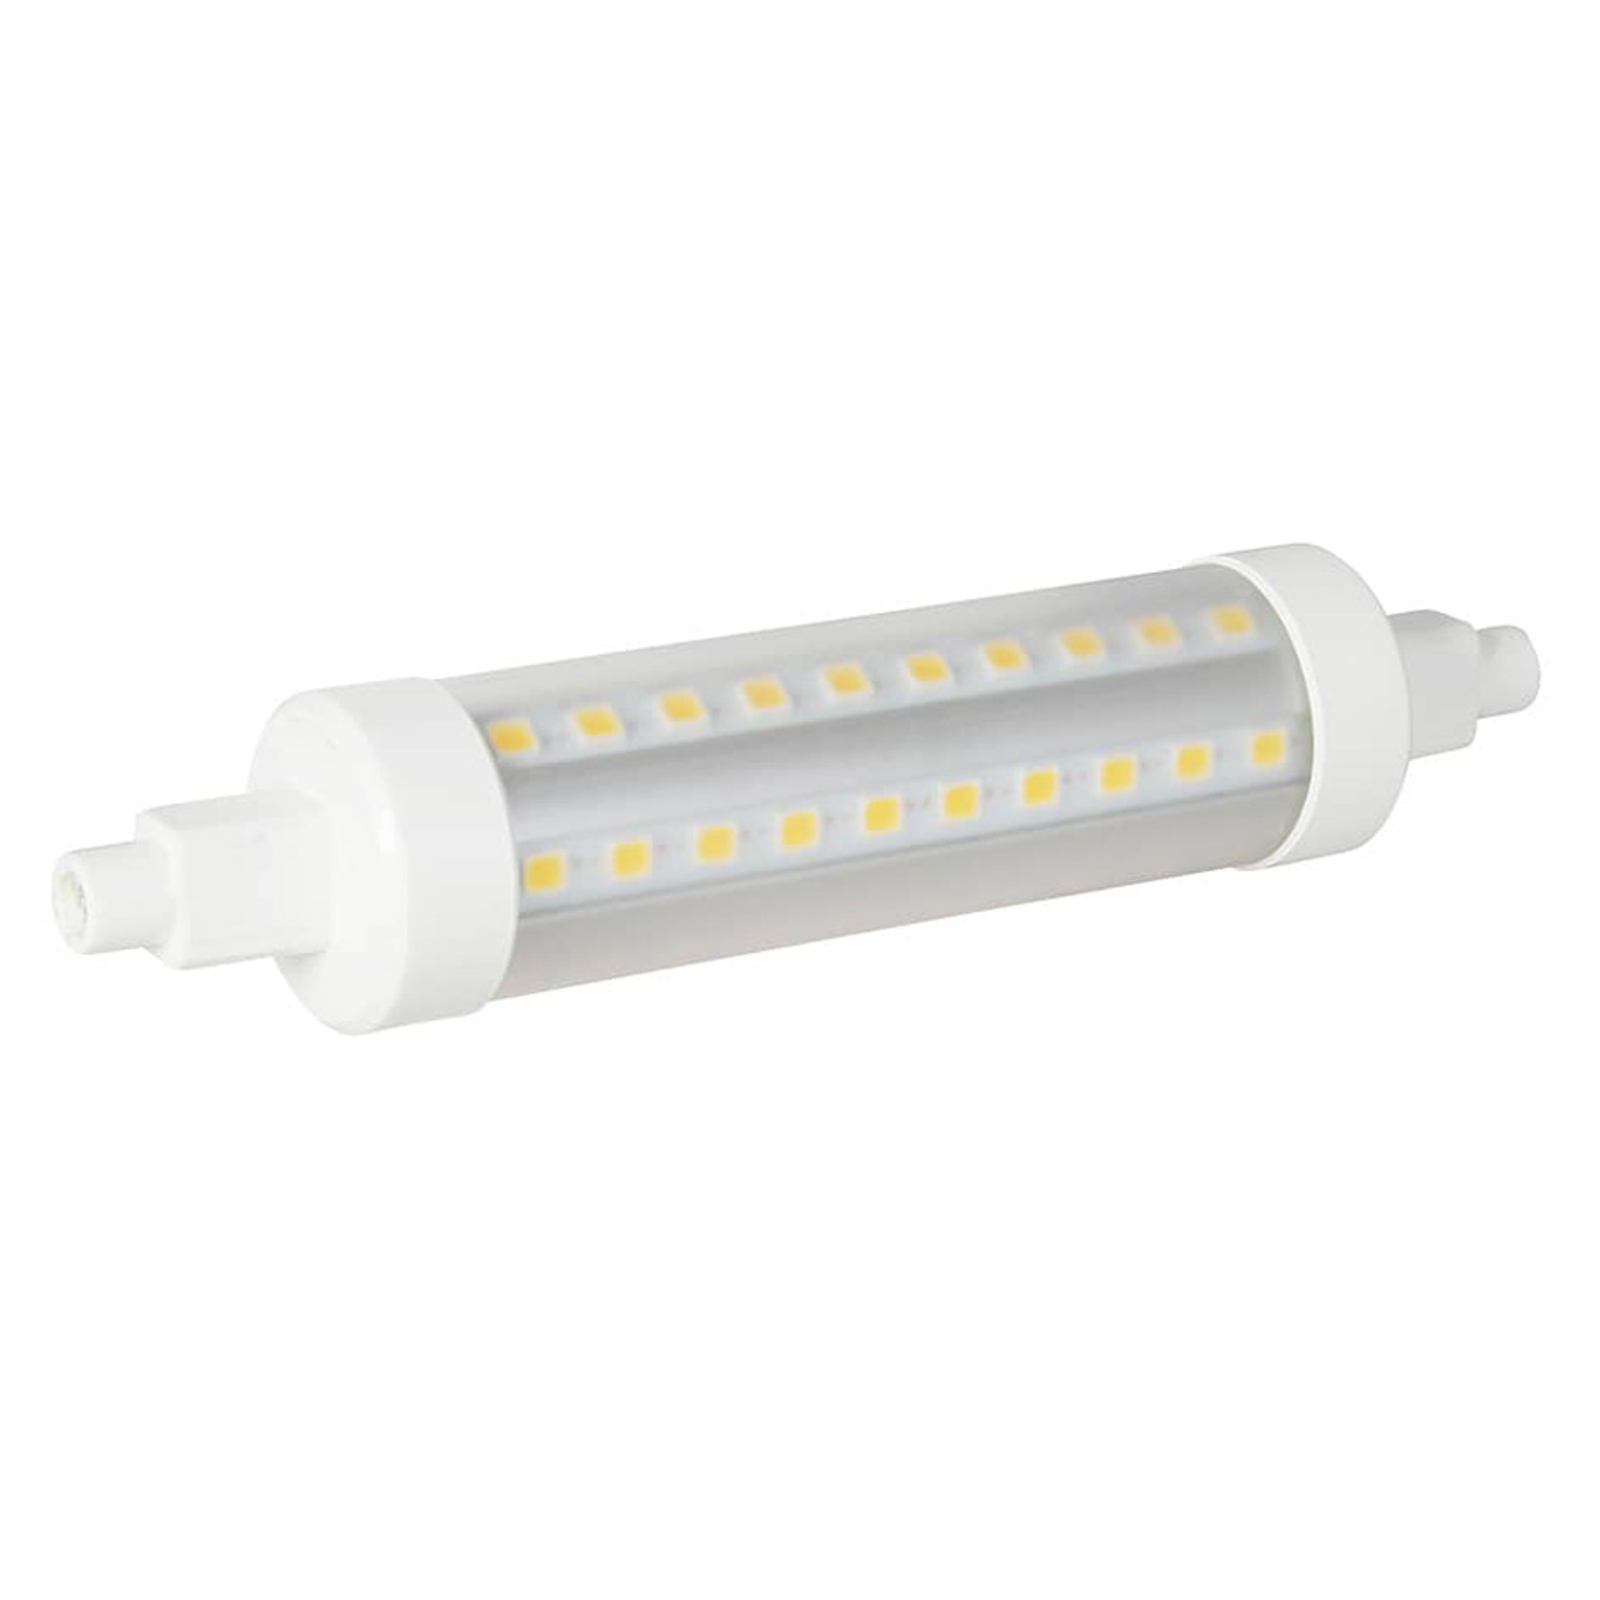 LED-Lampe VEO R7s 118mm 14W warmweiß 2.700K